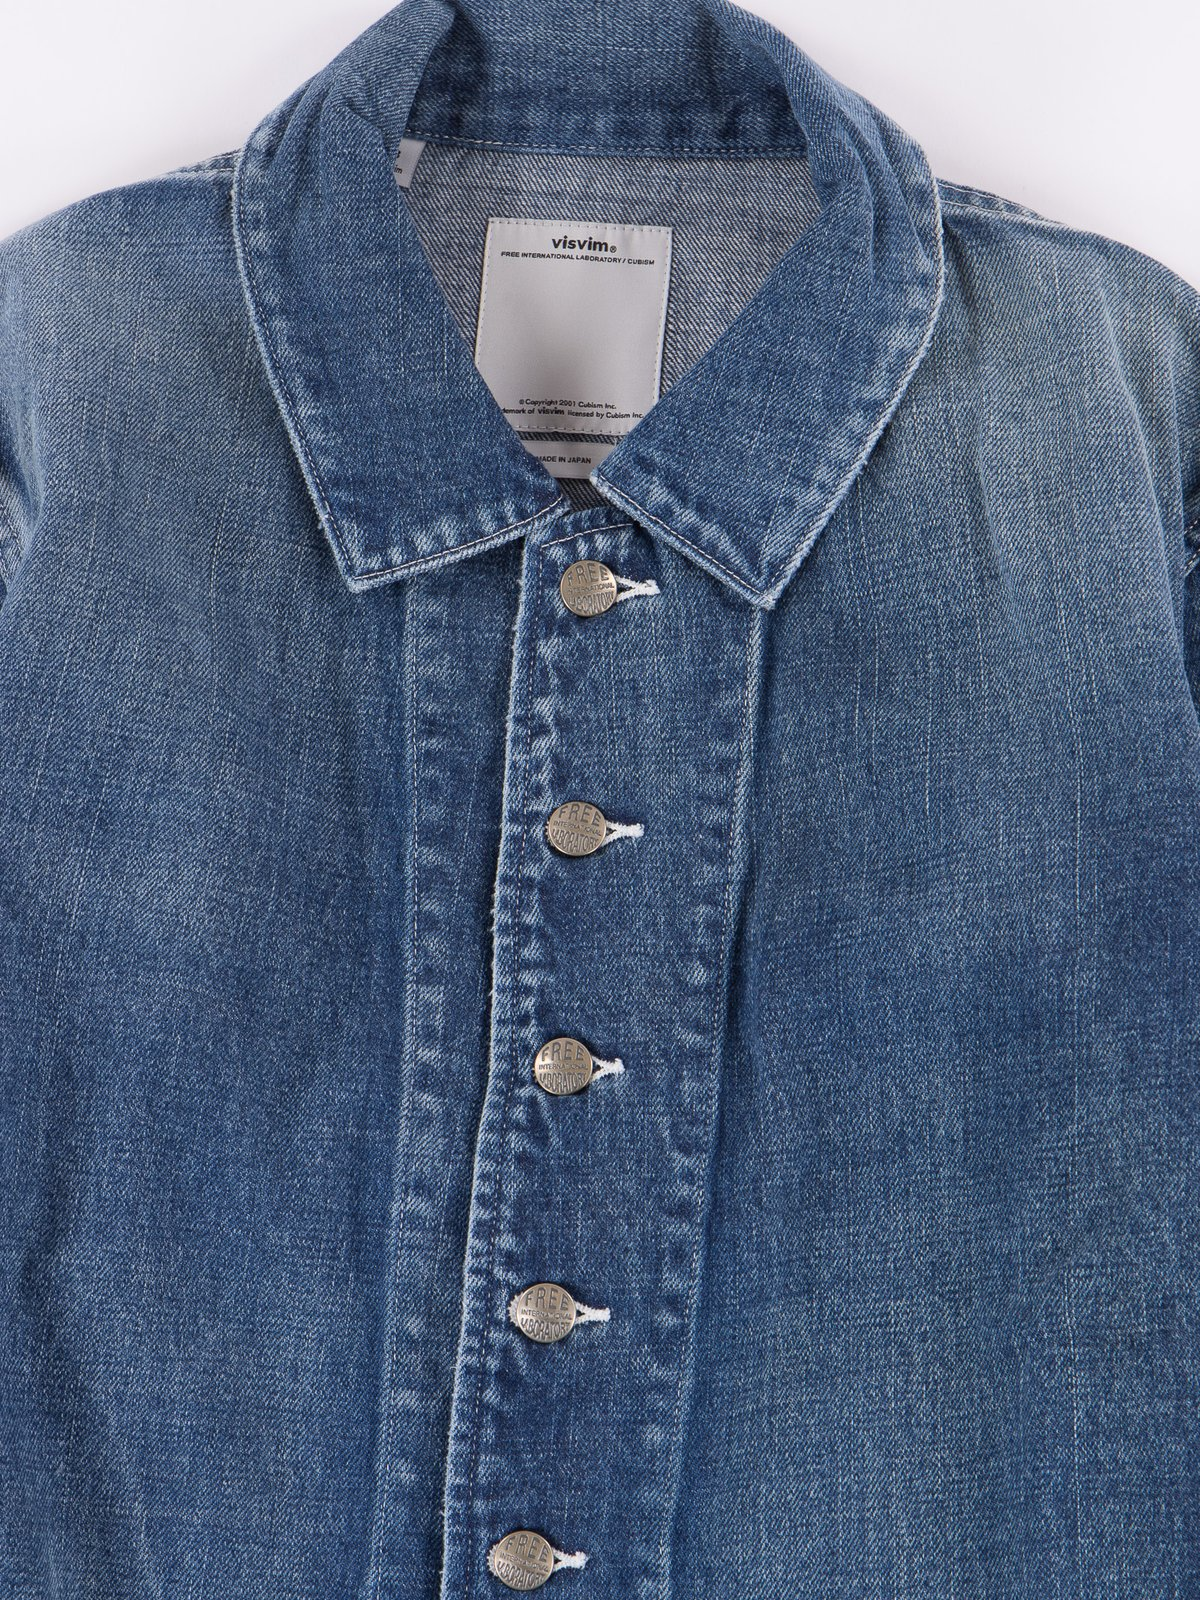 Damaged SS Bucky Coverall - Image 2